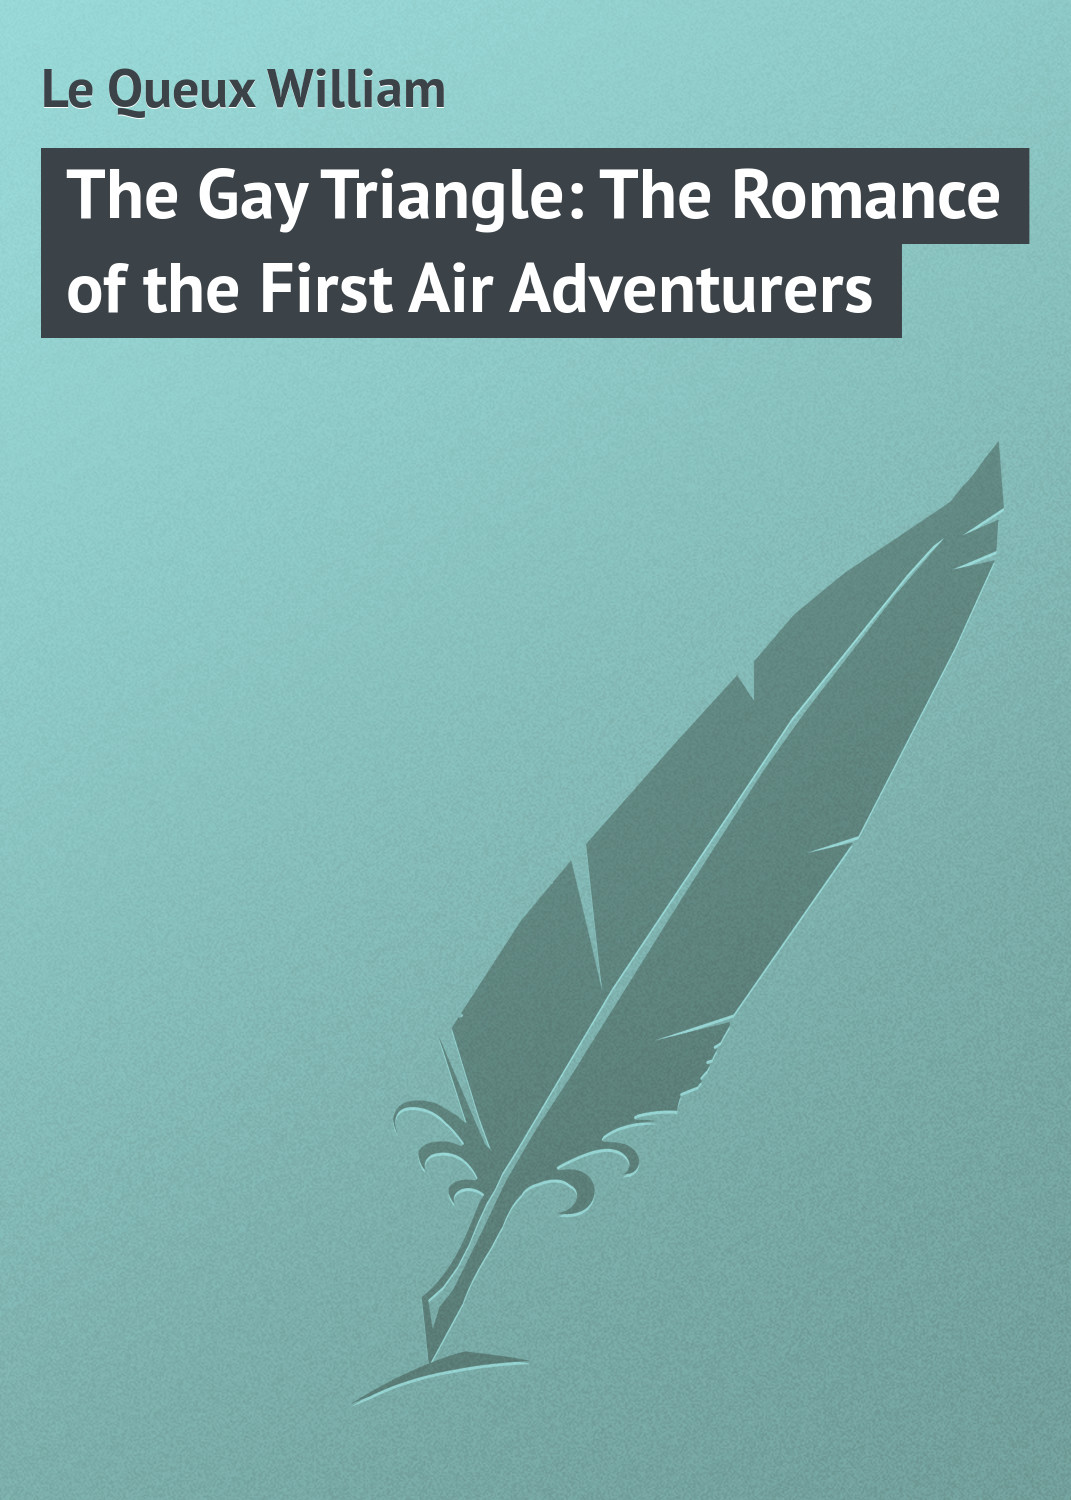 лучшая цена Le Queux William The Gay Triangle: The Romance of the First Air Adventurers